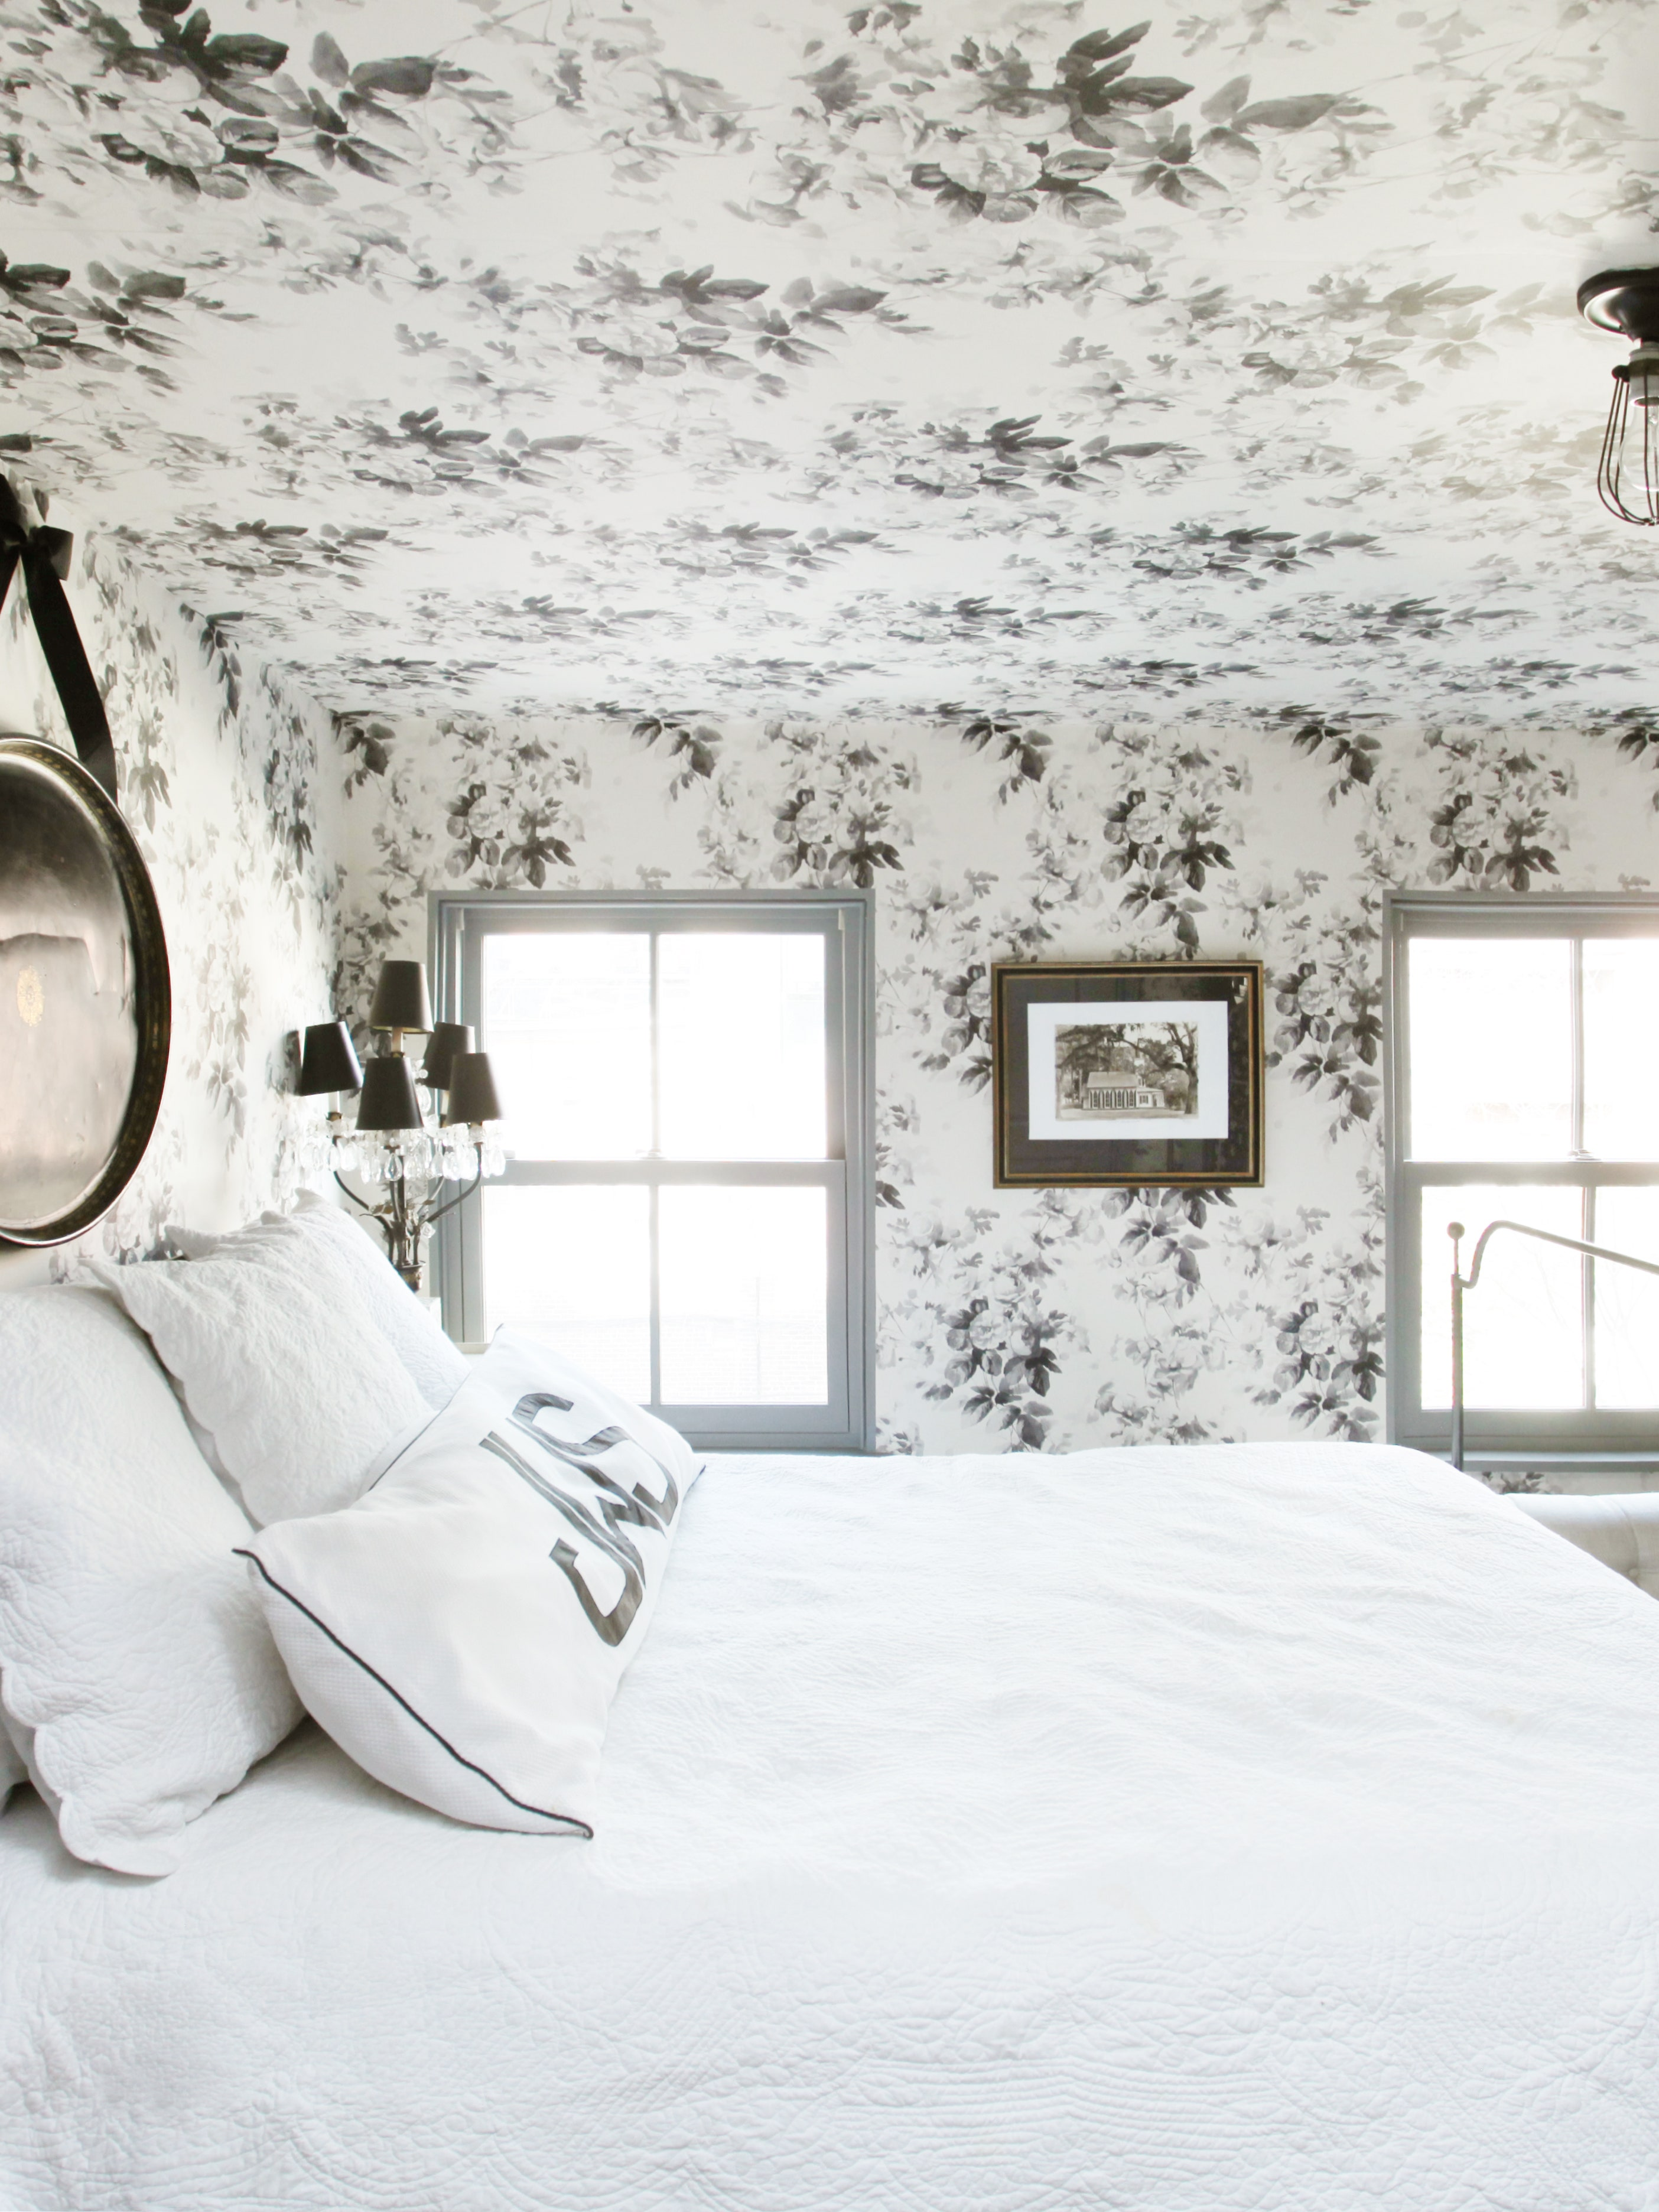 Try Ceiling Wallpaper to Open Up a Cramped Room Architectural Digest 2808x3744